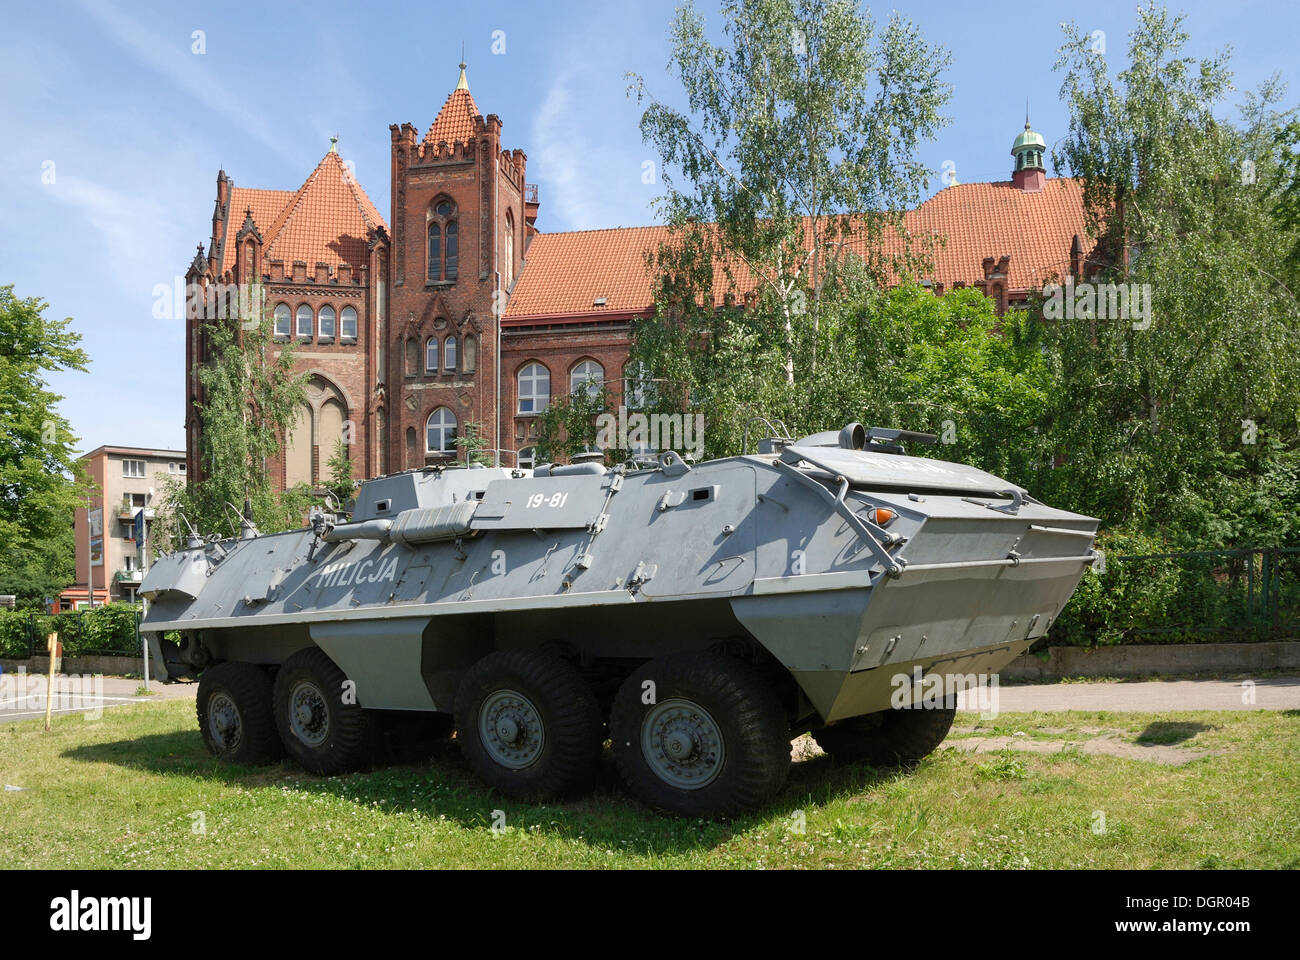 Armored vehicle of the militia in the Exhibition about the struggle of the Polish trade union Solidarnosc 'Roads to Freedom'. - Stock Image